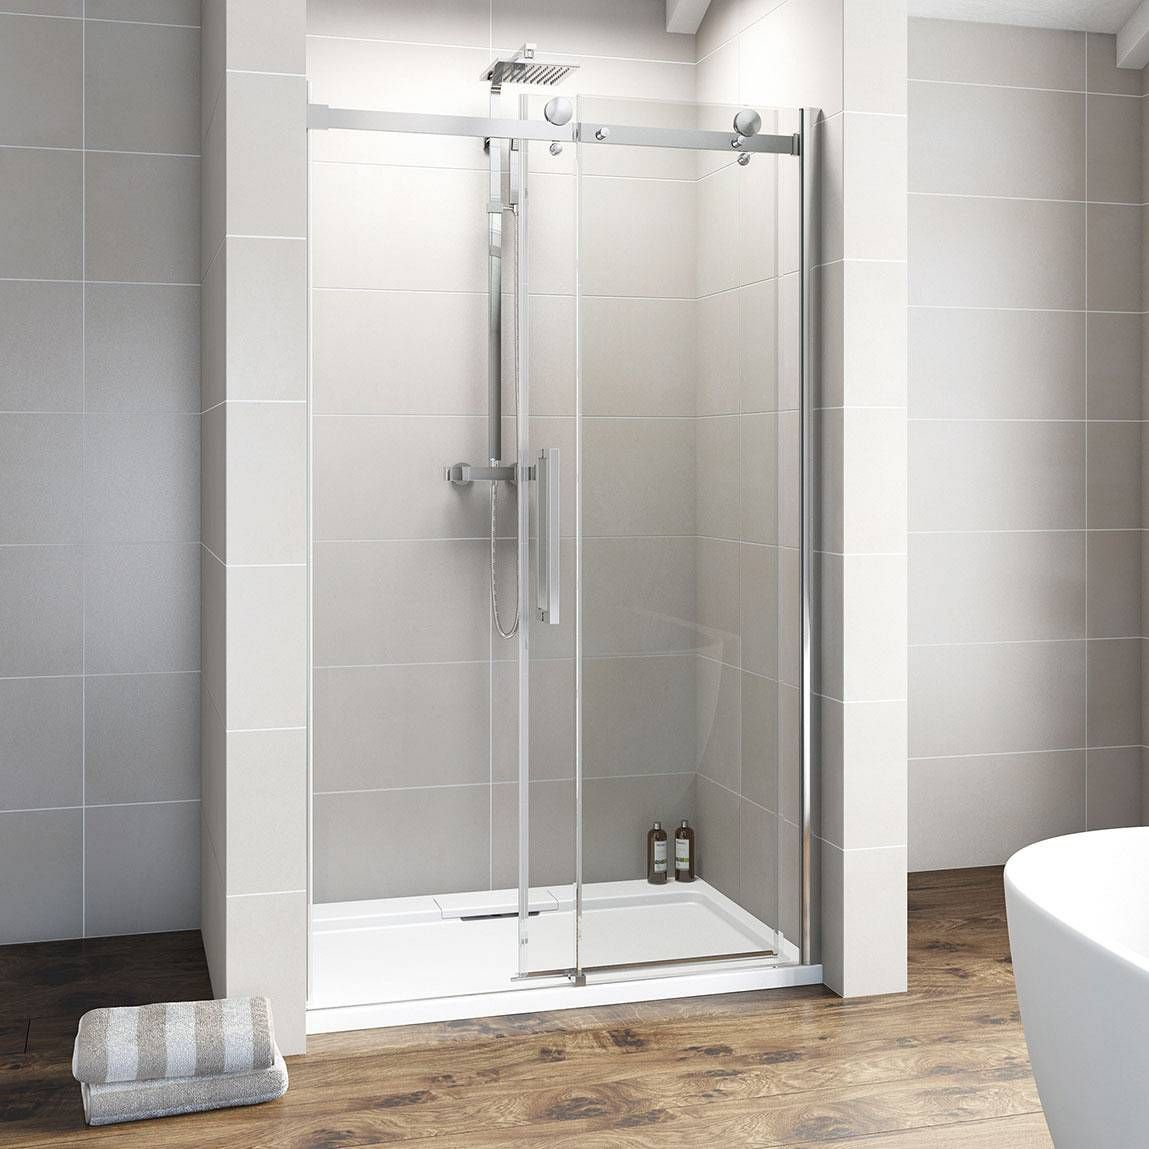 V8 8mm Frameless Sliding Shower Door 1200 Victoria Plumb Dusche Duschraum Duschtur